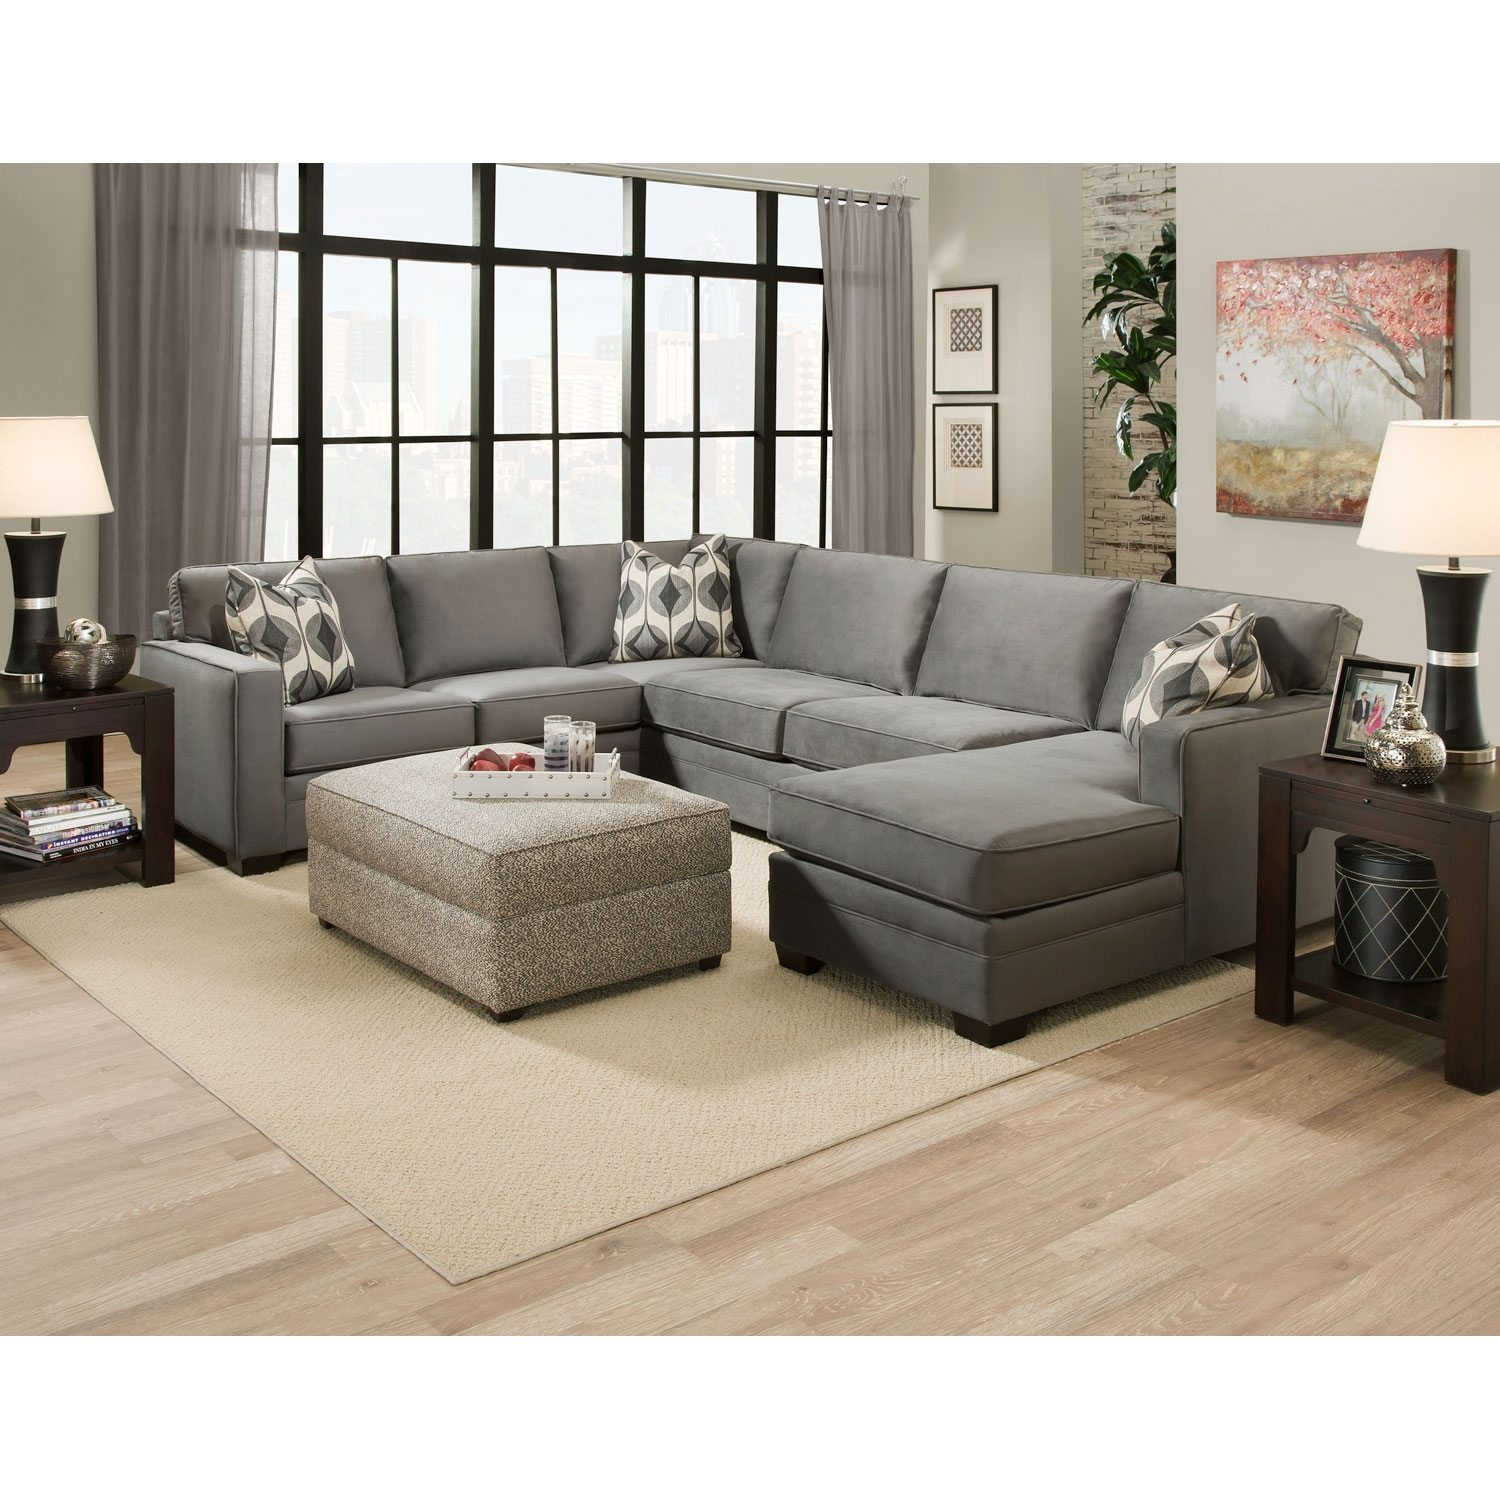 Sectional Couches Cheap Cheap Sectional Sofa Round Loveseat Cheap